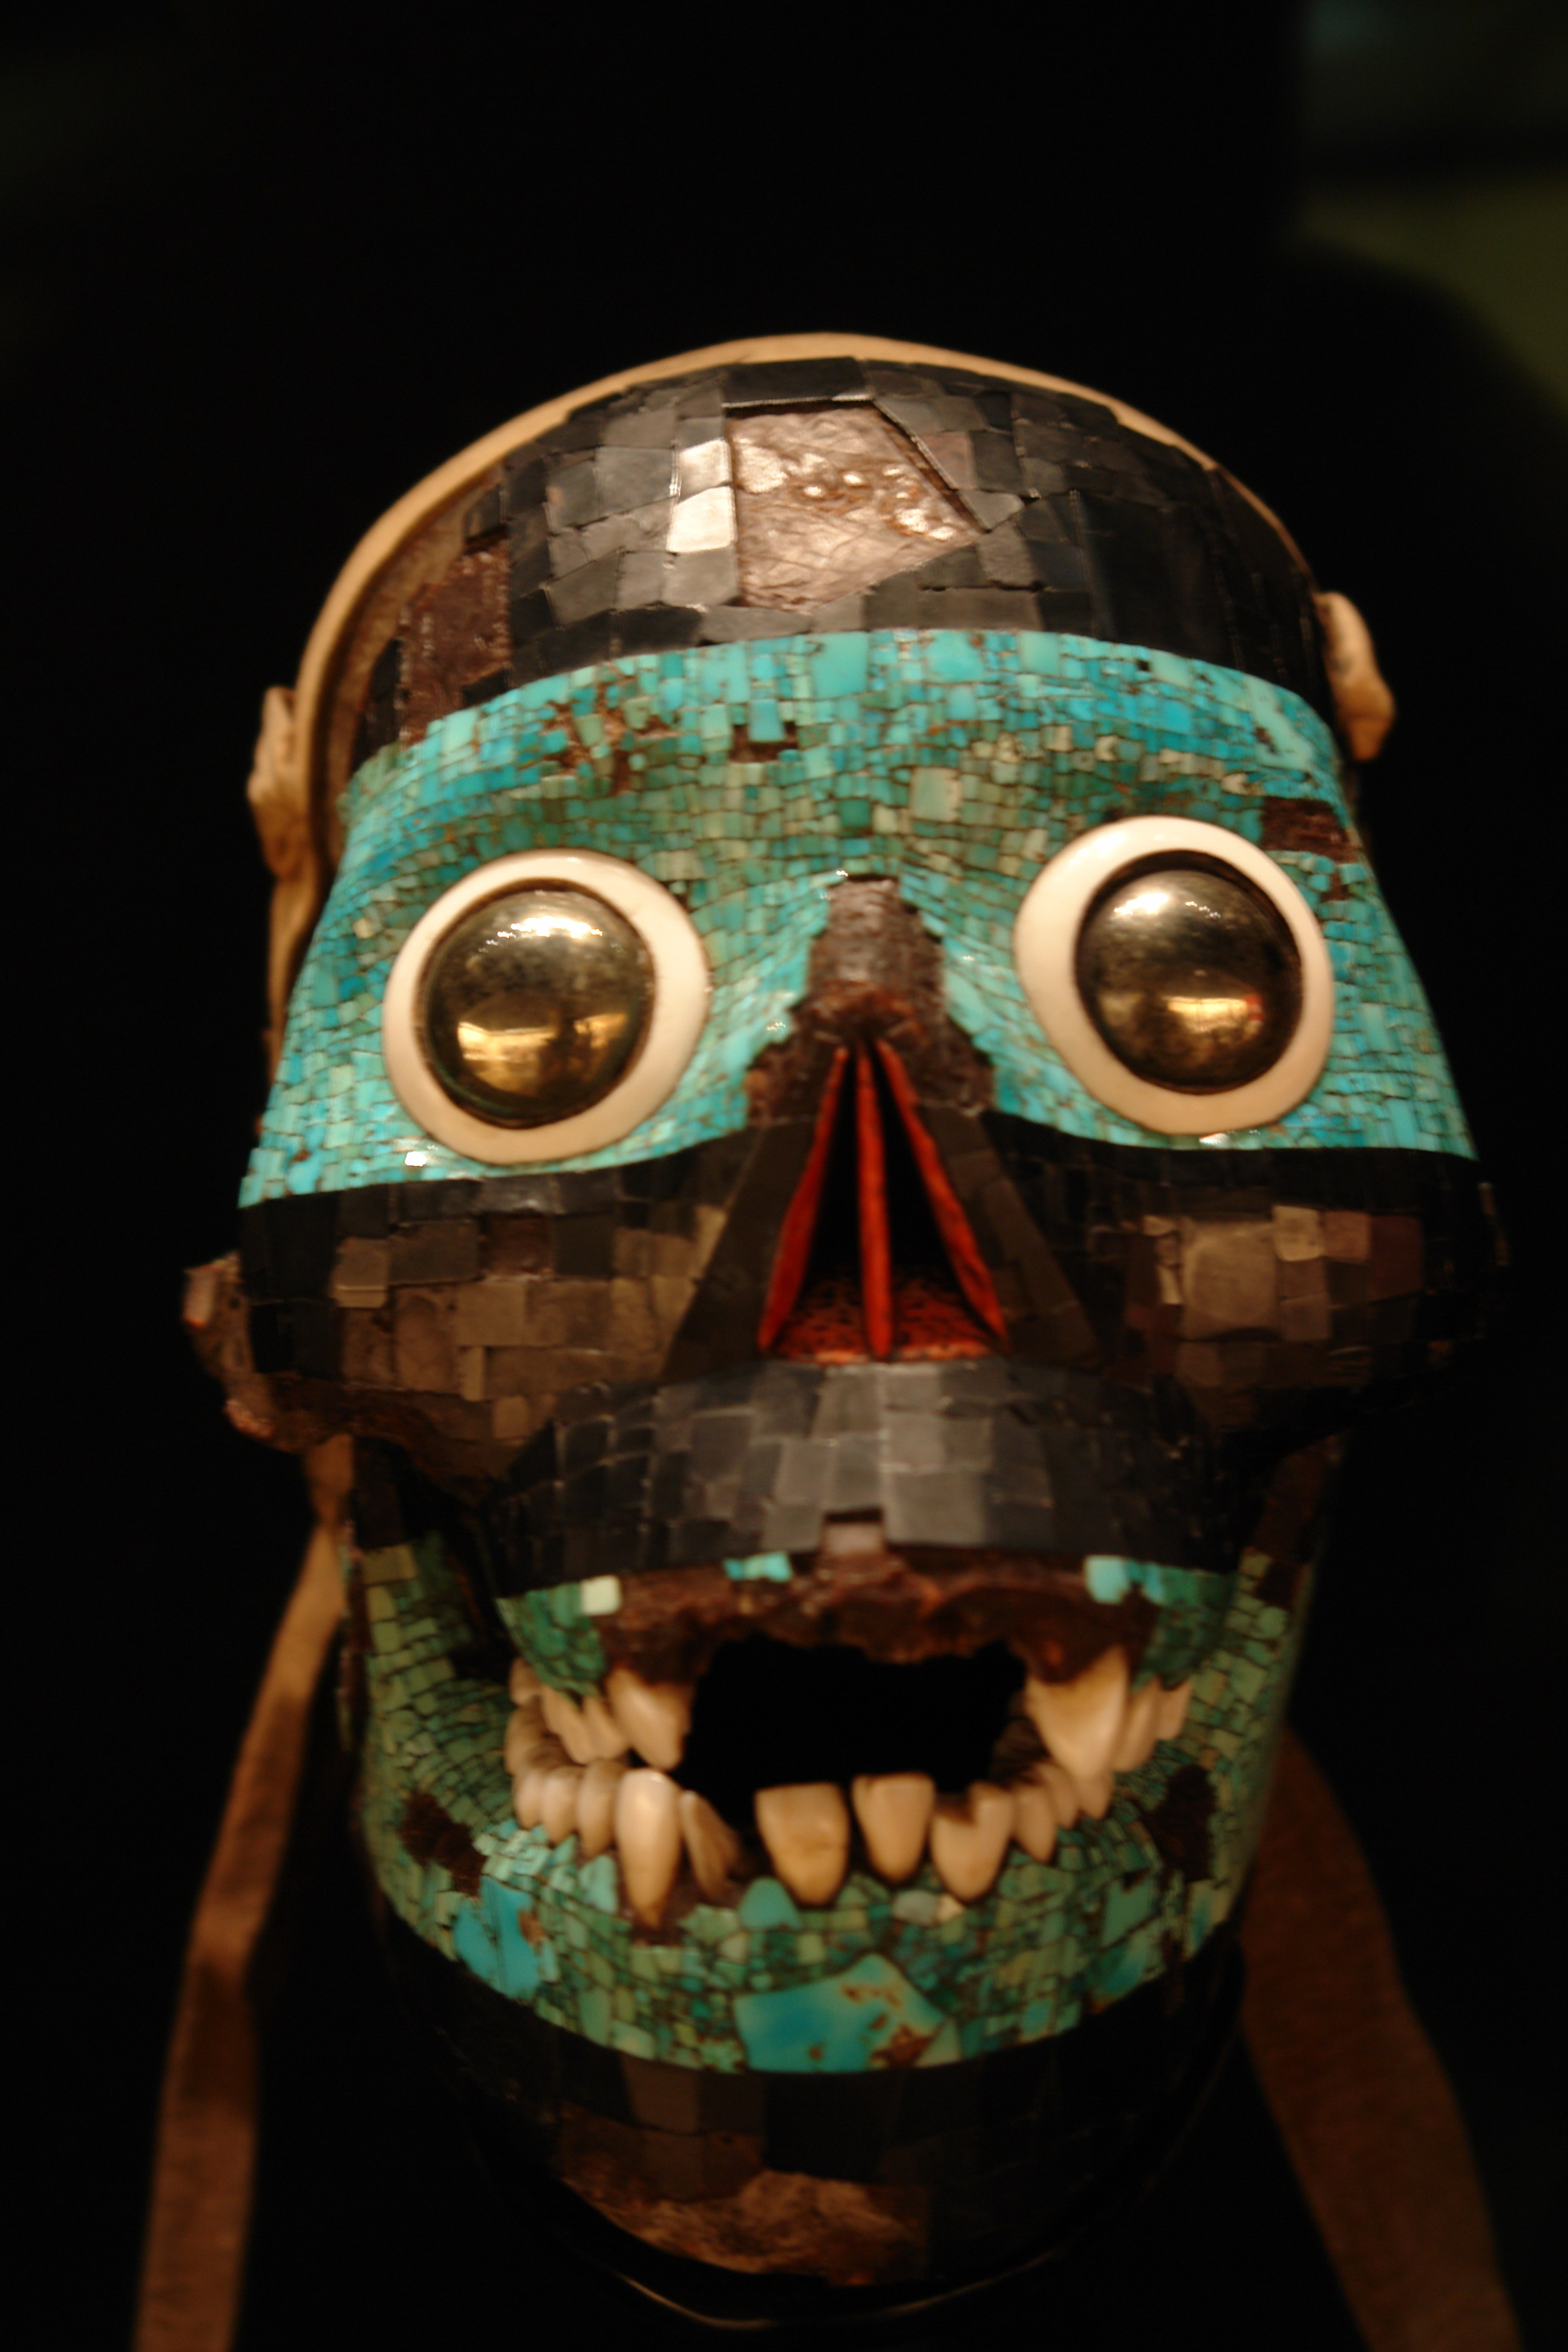 Drawn jaguar smoke From mask Tezcatlipoca representing Turquoise